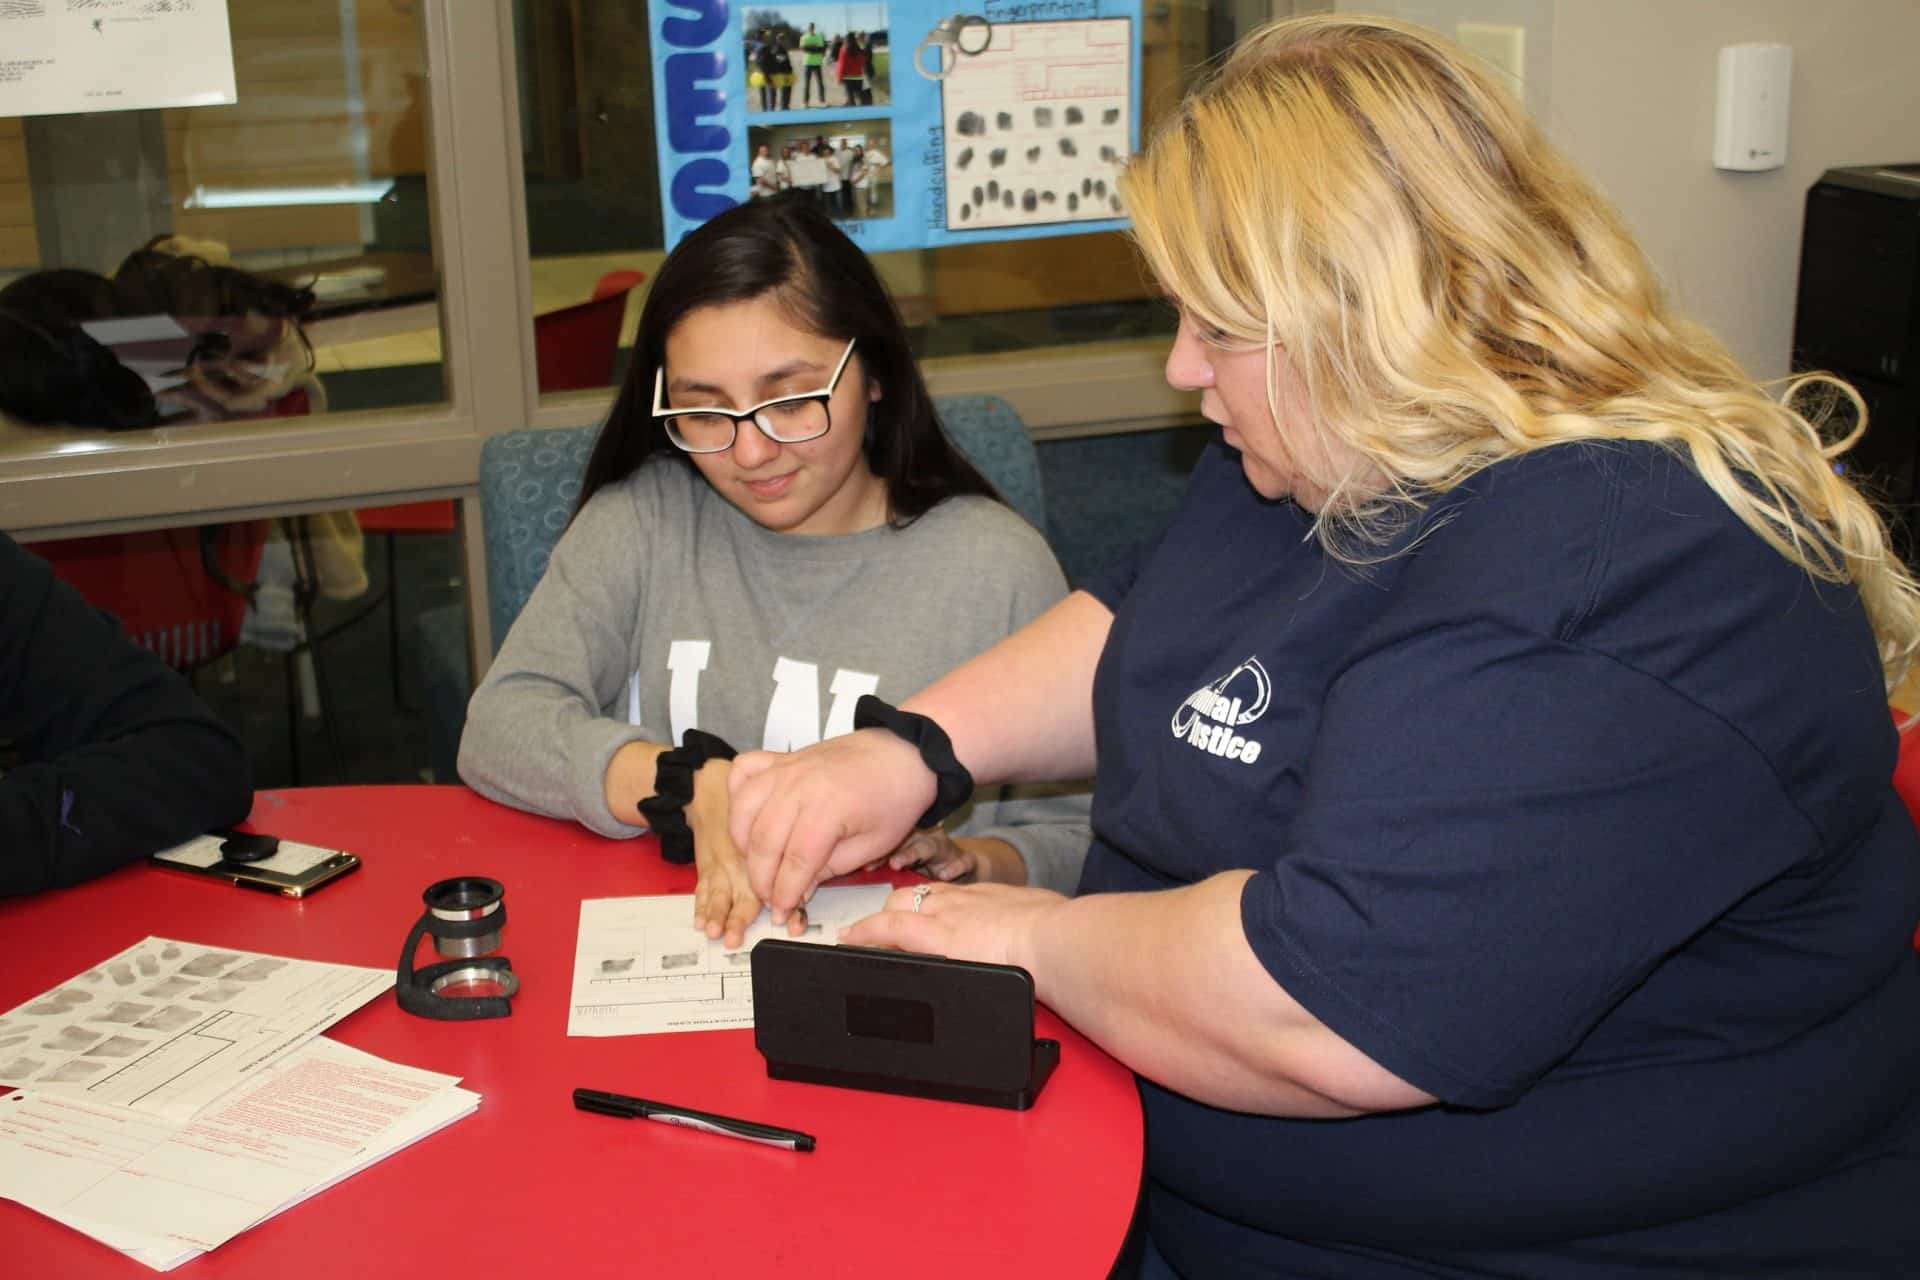 Boys and Girls club student participating in fingerprint exercise.